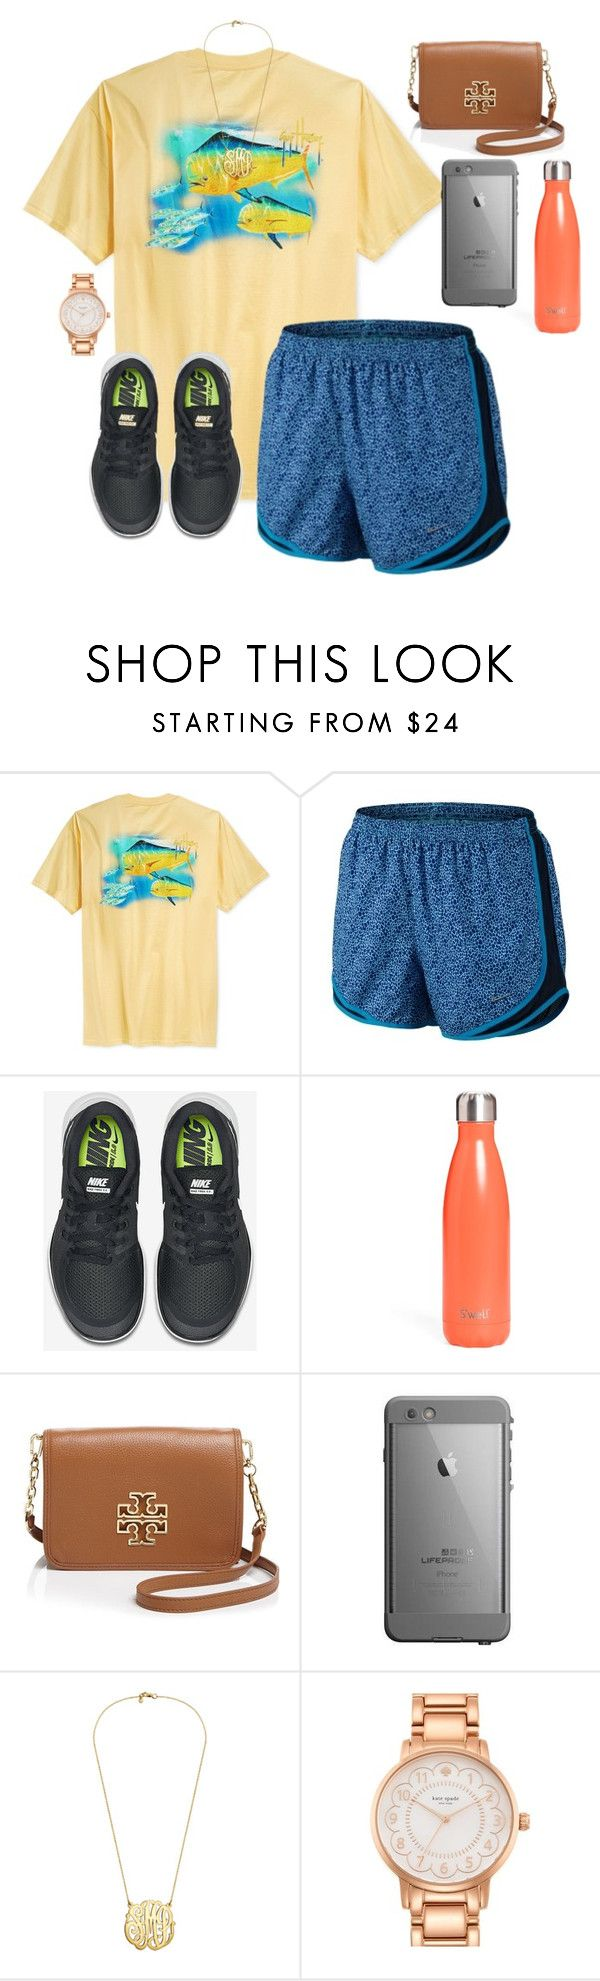 """""""40 questions tag"""" by sassysouthernprep99 ❤ liked on Polyvore featuring Guy Harvey, NIKE, S'well, Tory Burch, Kate Spade, women's clothing, women, female, woman and misses"""